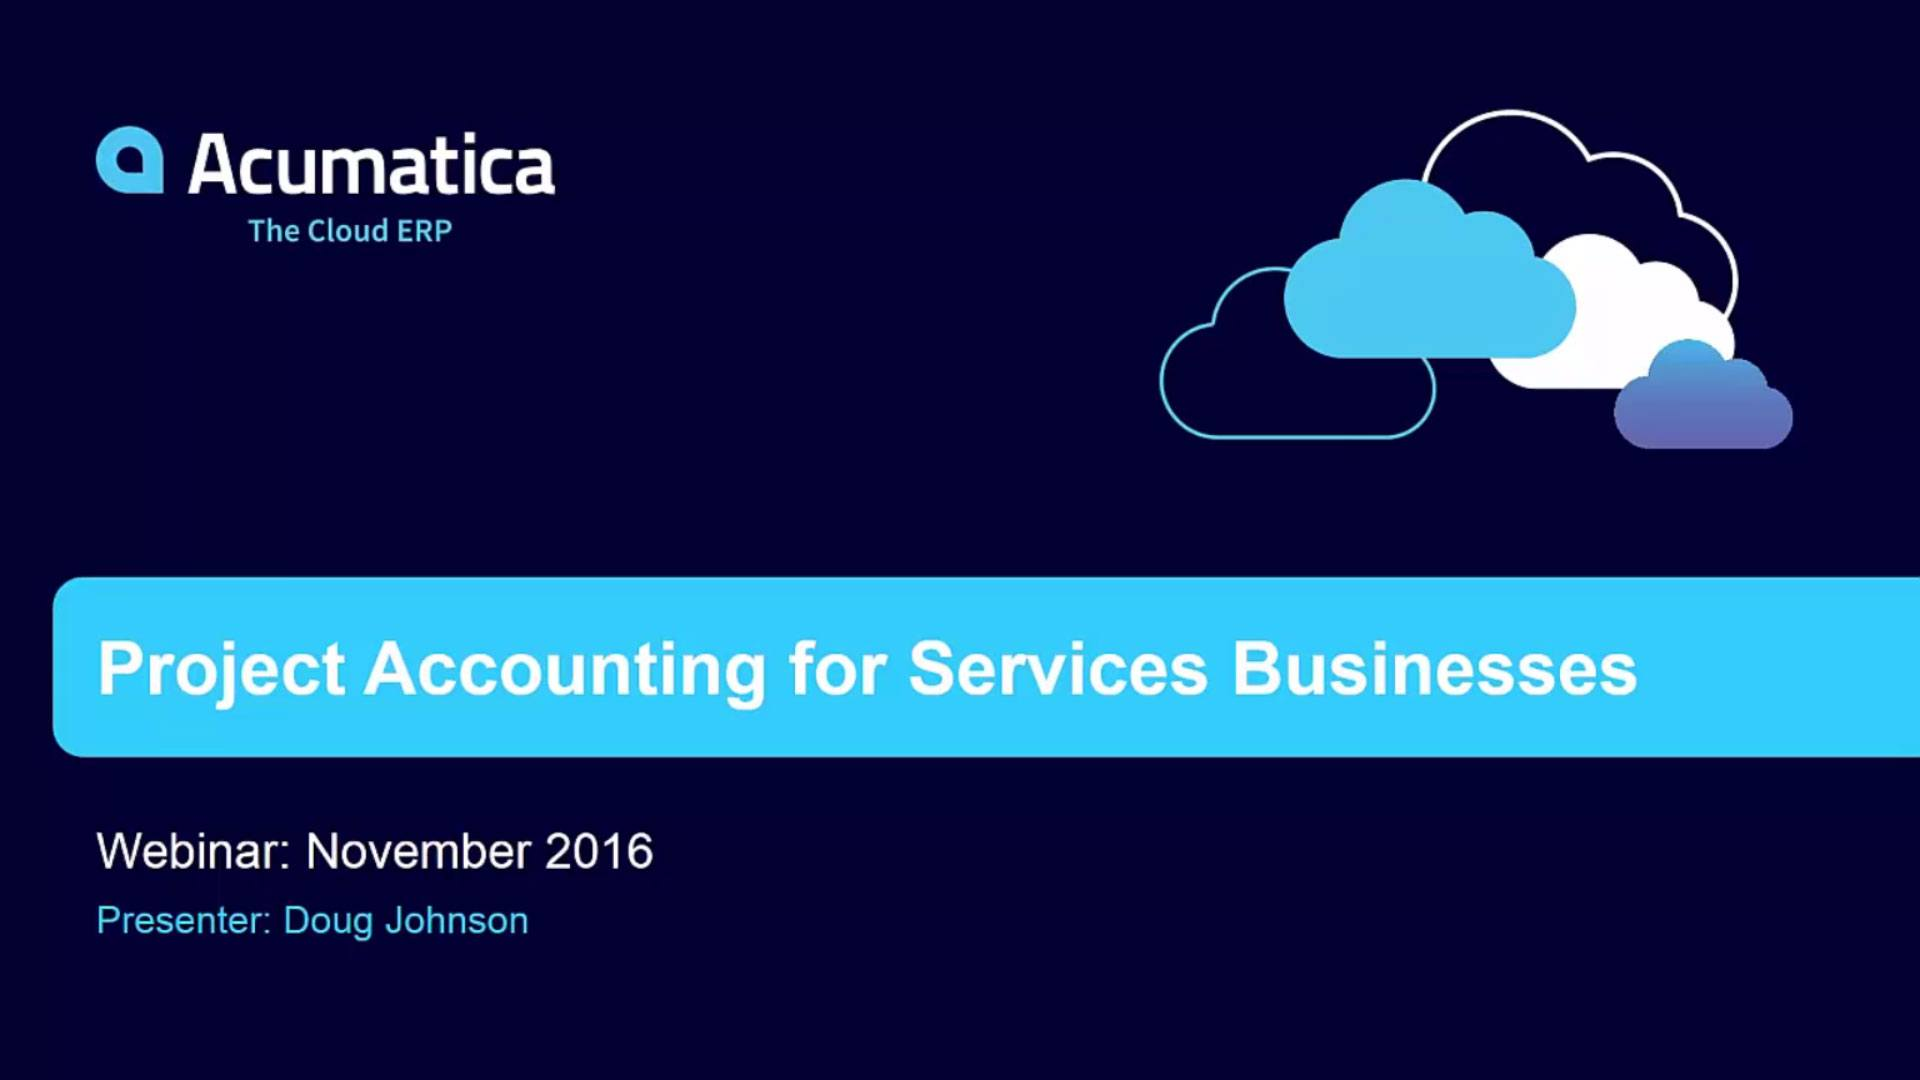 Acumatica Project Accounting Webinar (November 17, 2016)